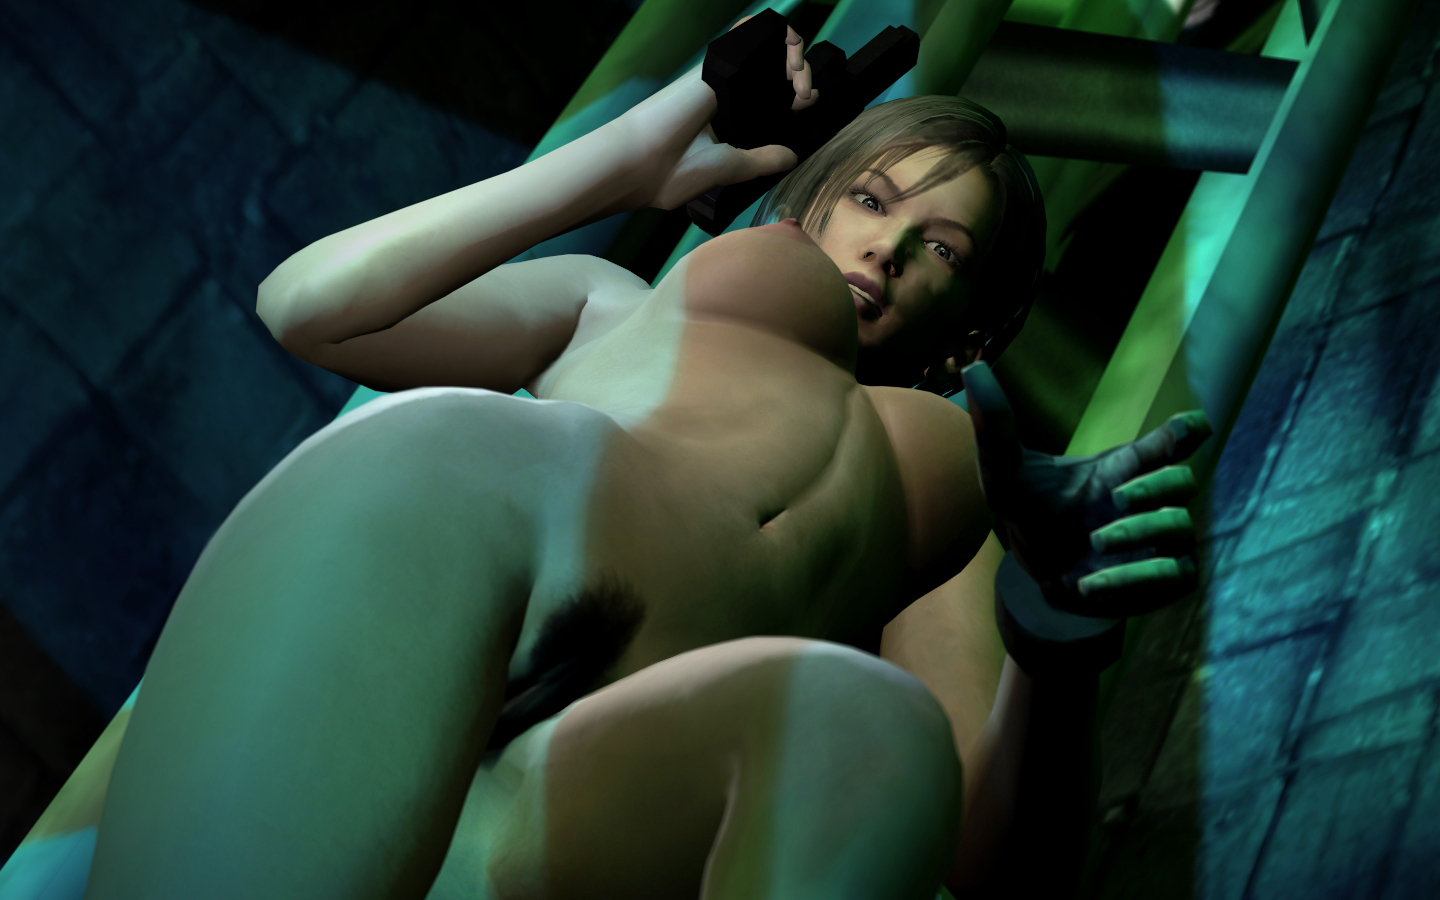 Resident evil movie sex nude photo naked scene